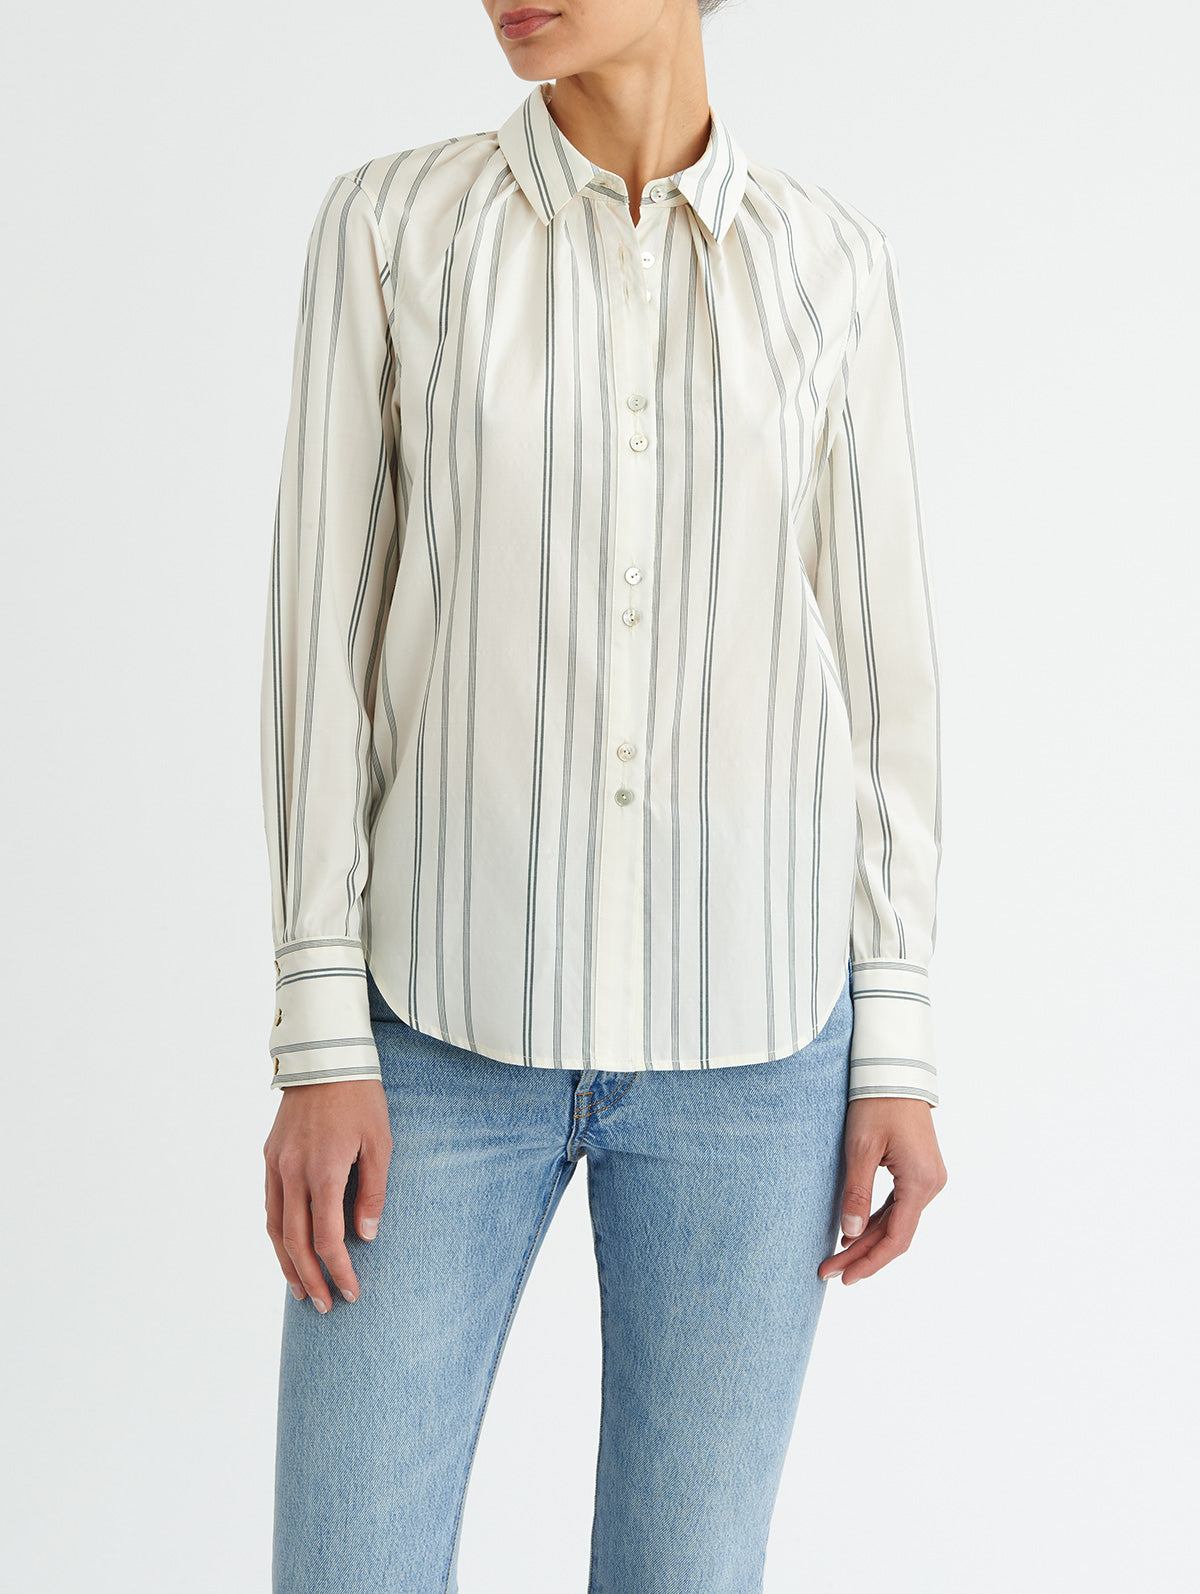 SHIRRED NECK BUTTON DOWN<br> PRE-ORDER